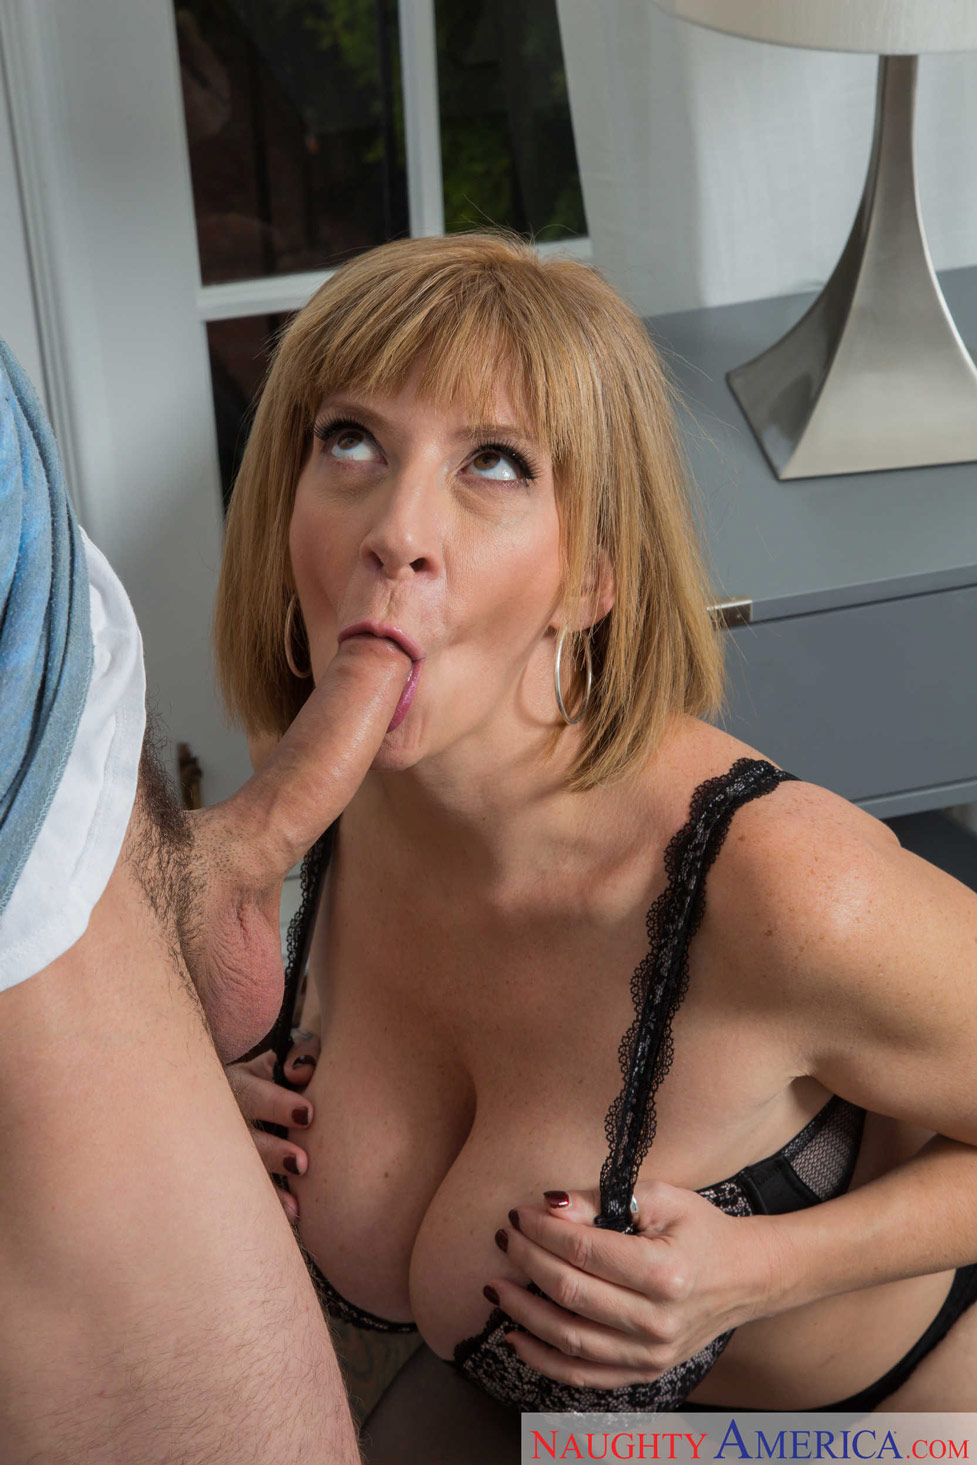 Busty milf rachael cavalli begging for stepsons big hard rod - 1 9